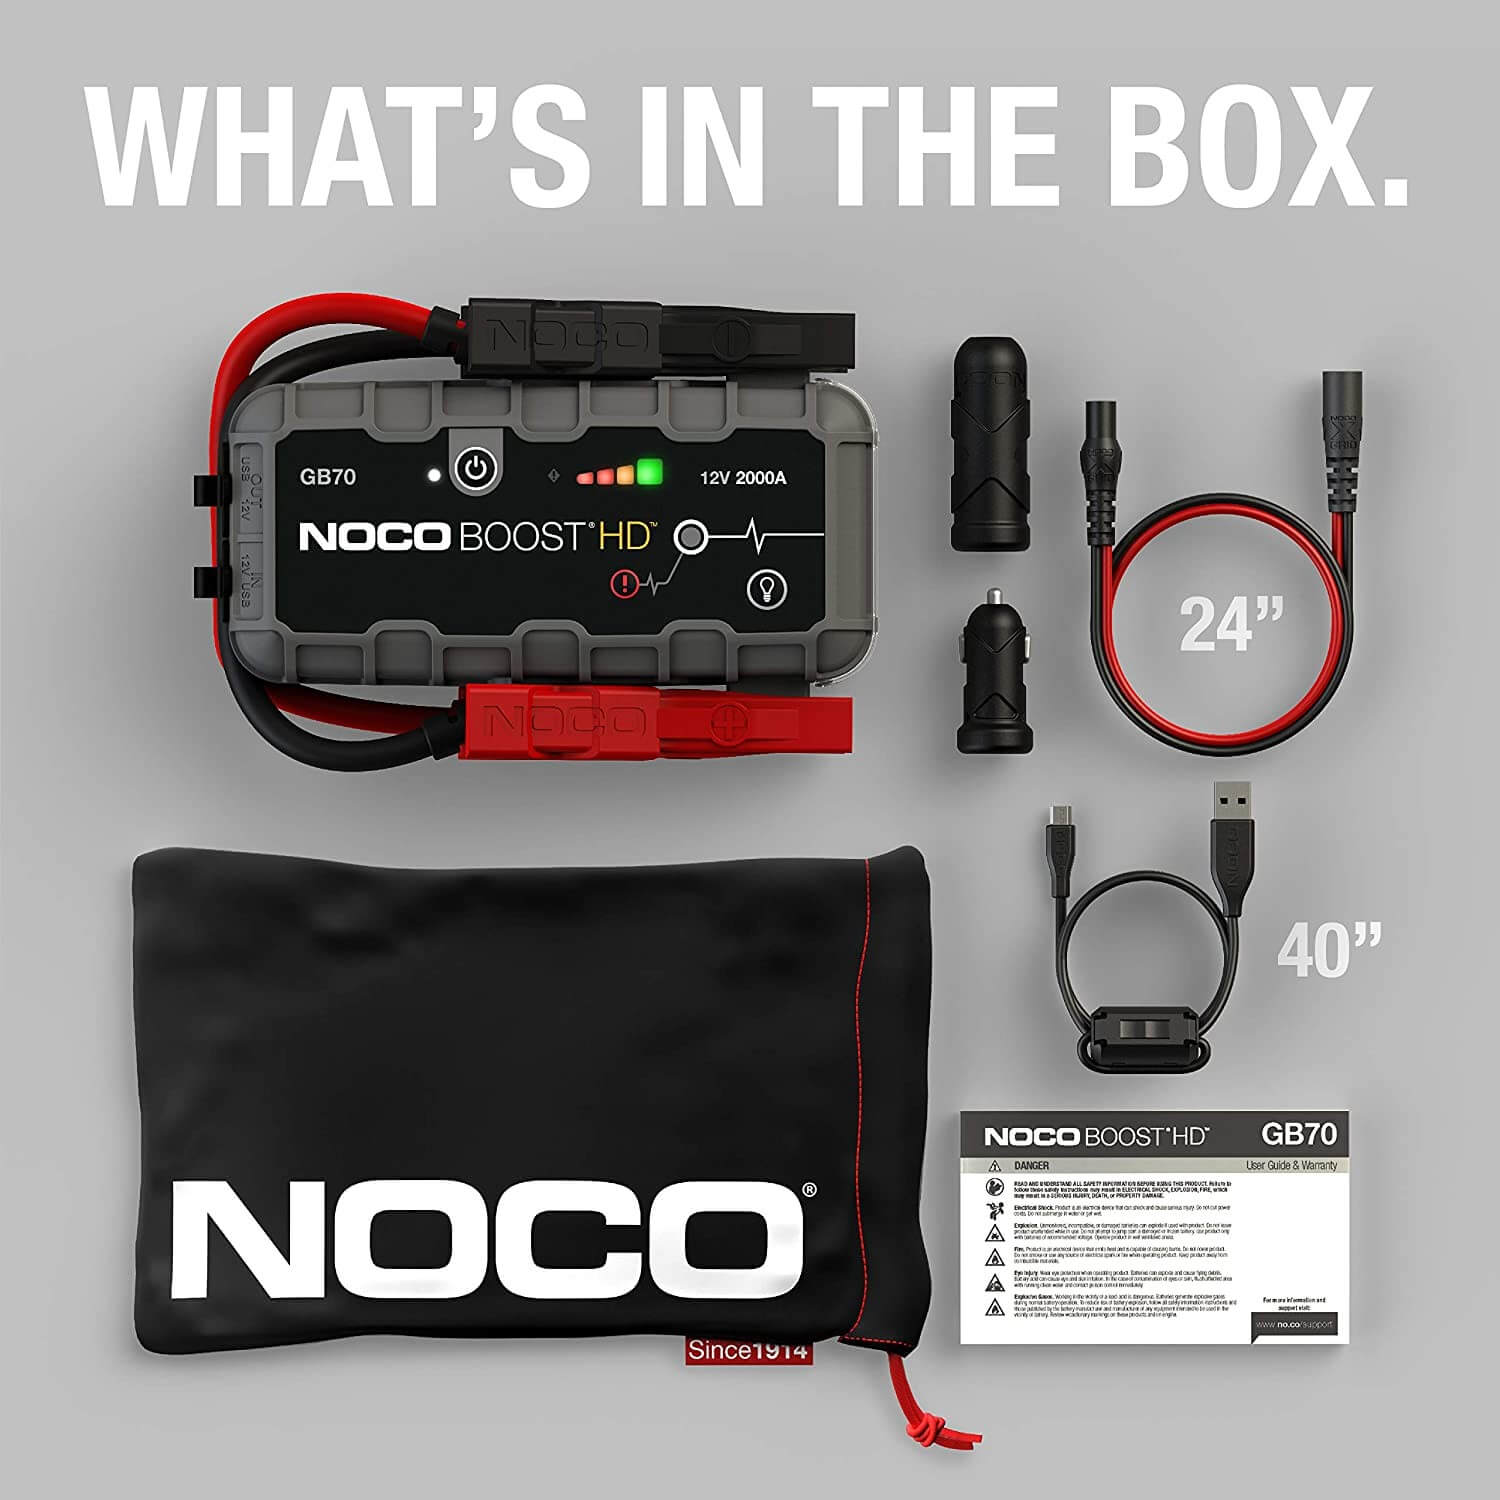 Unboxing the Noco GB70